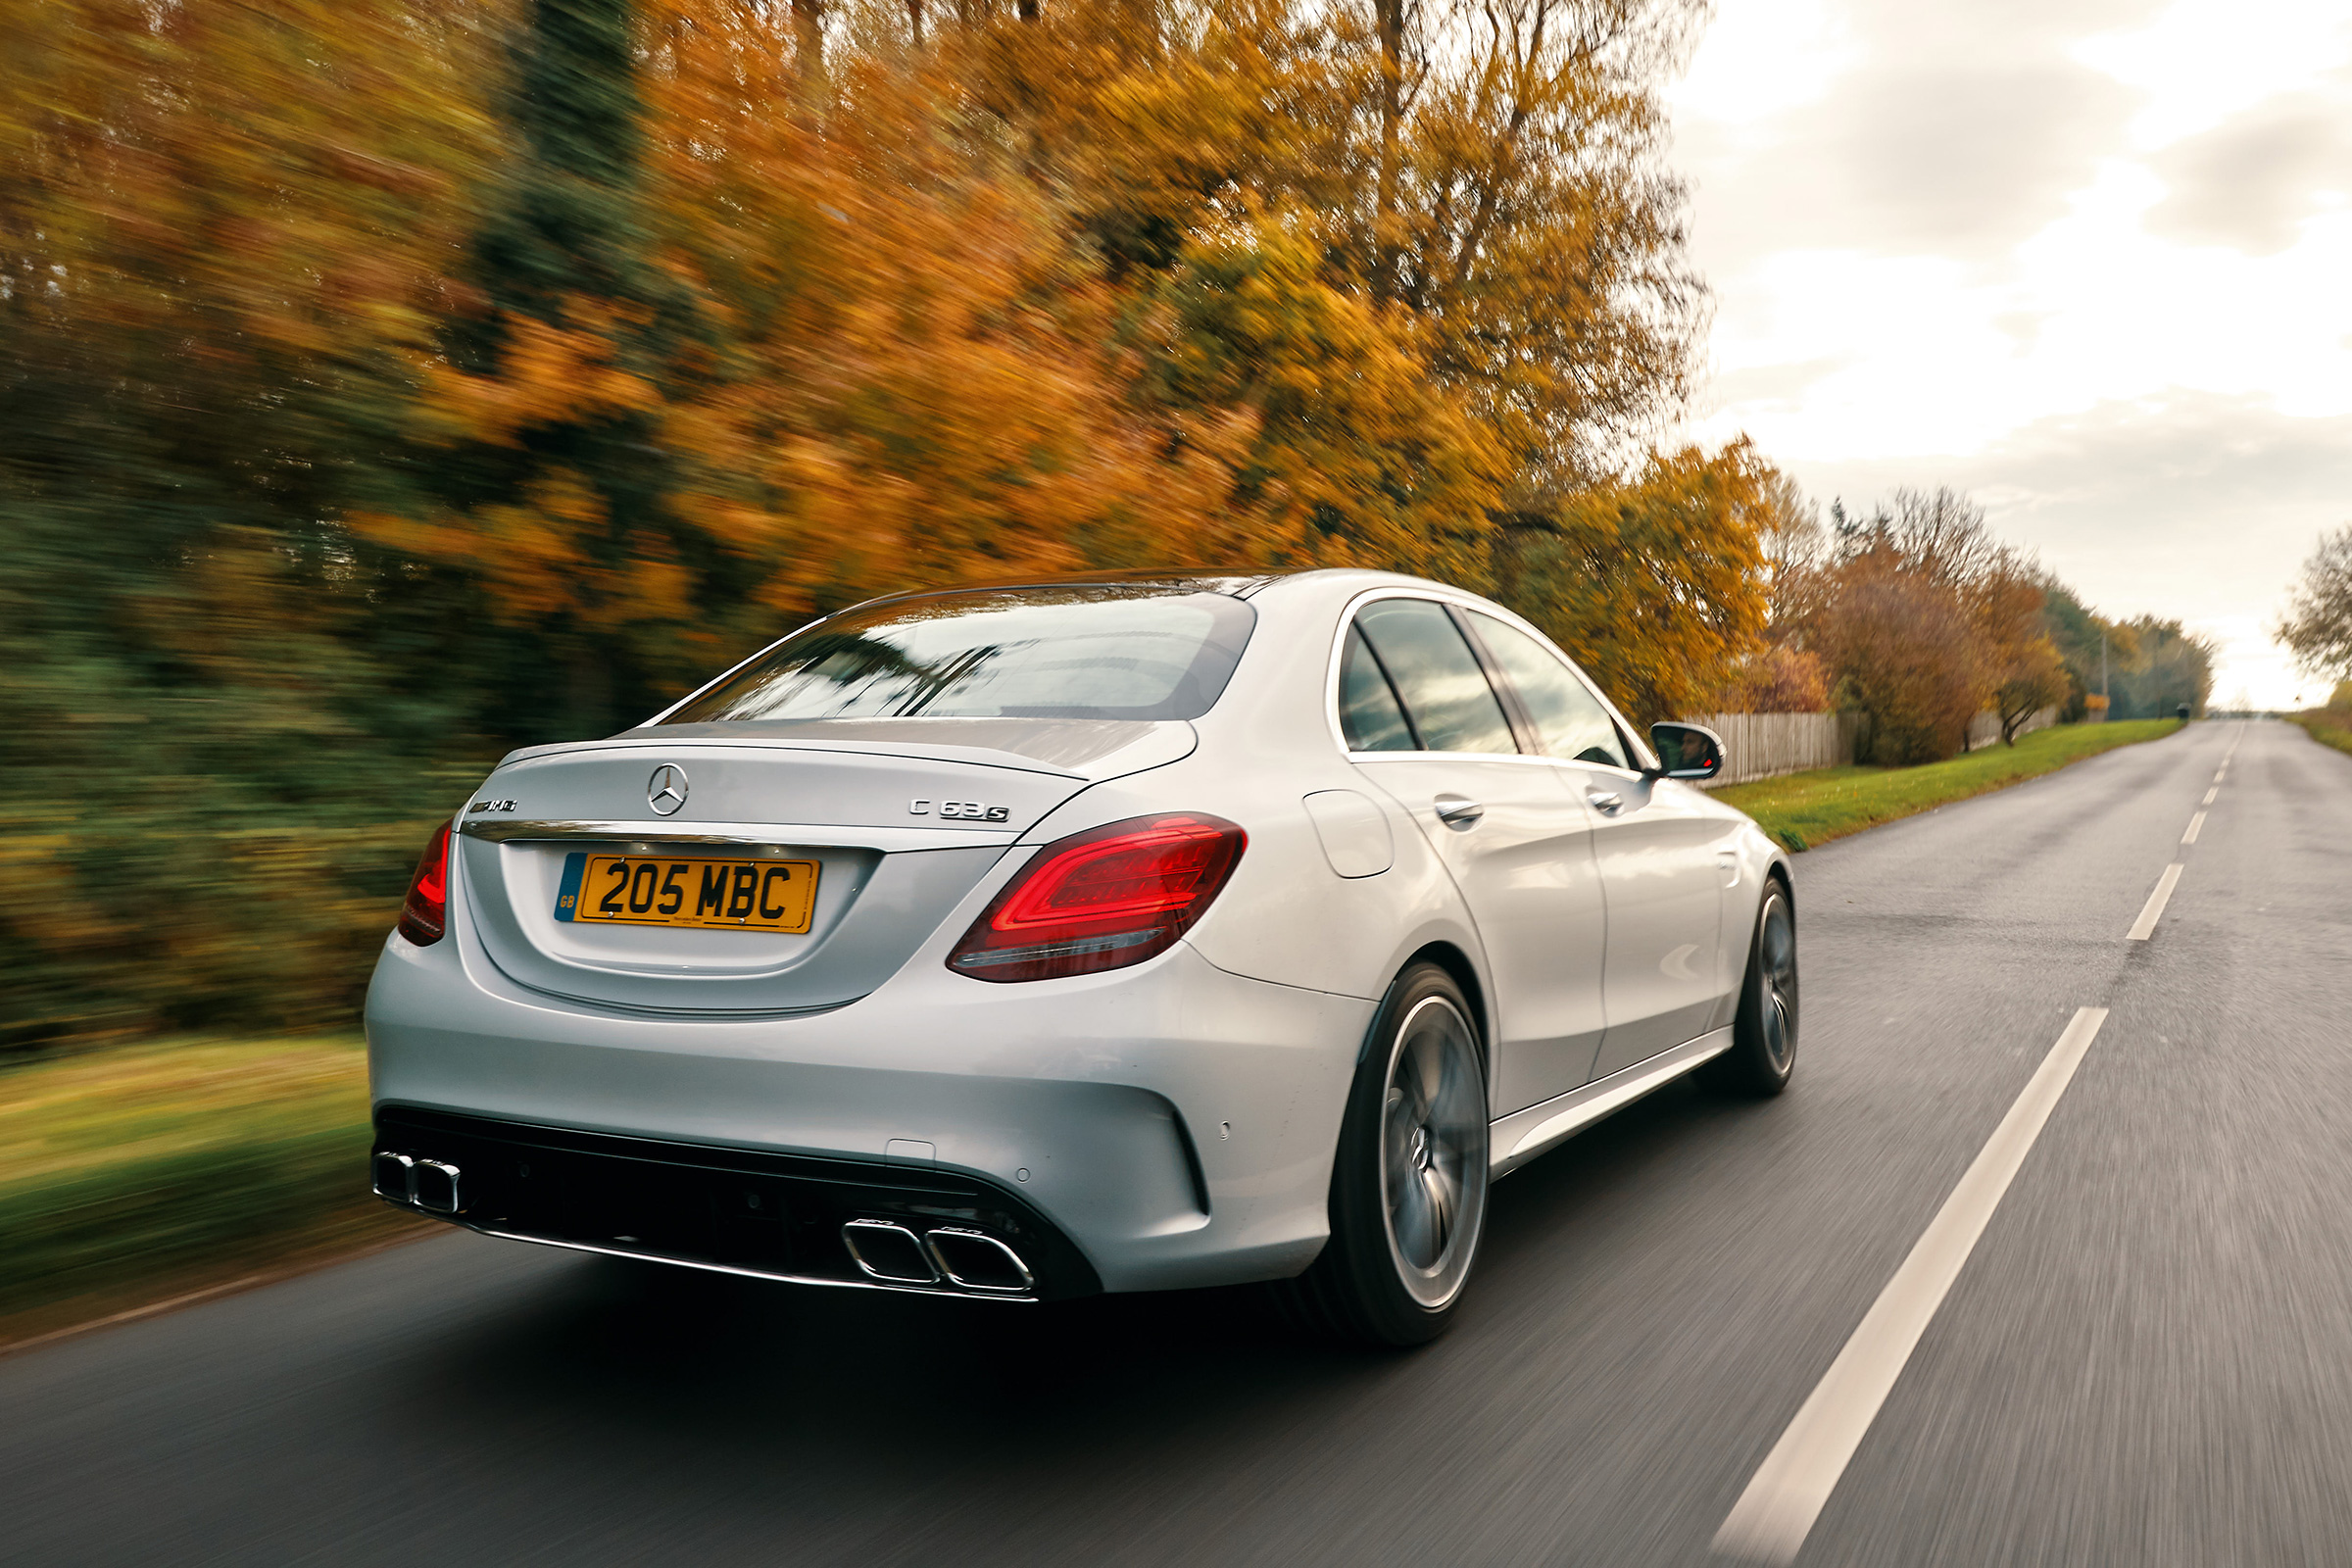 New 2019 Mercedes-AMG C63 review – BMW's M3 challenger just